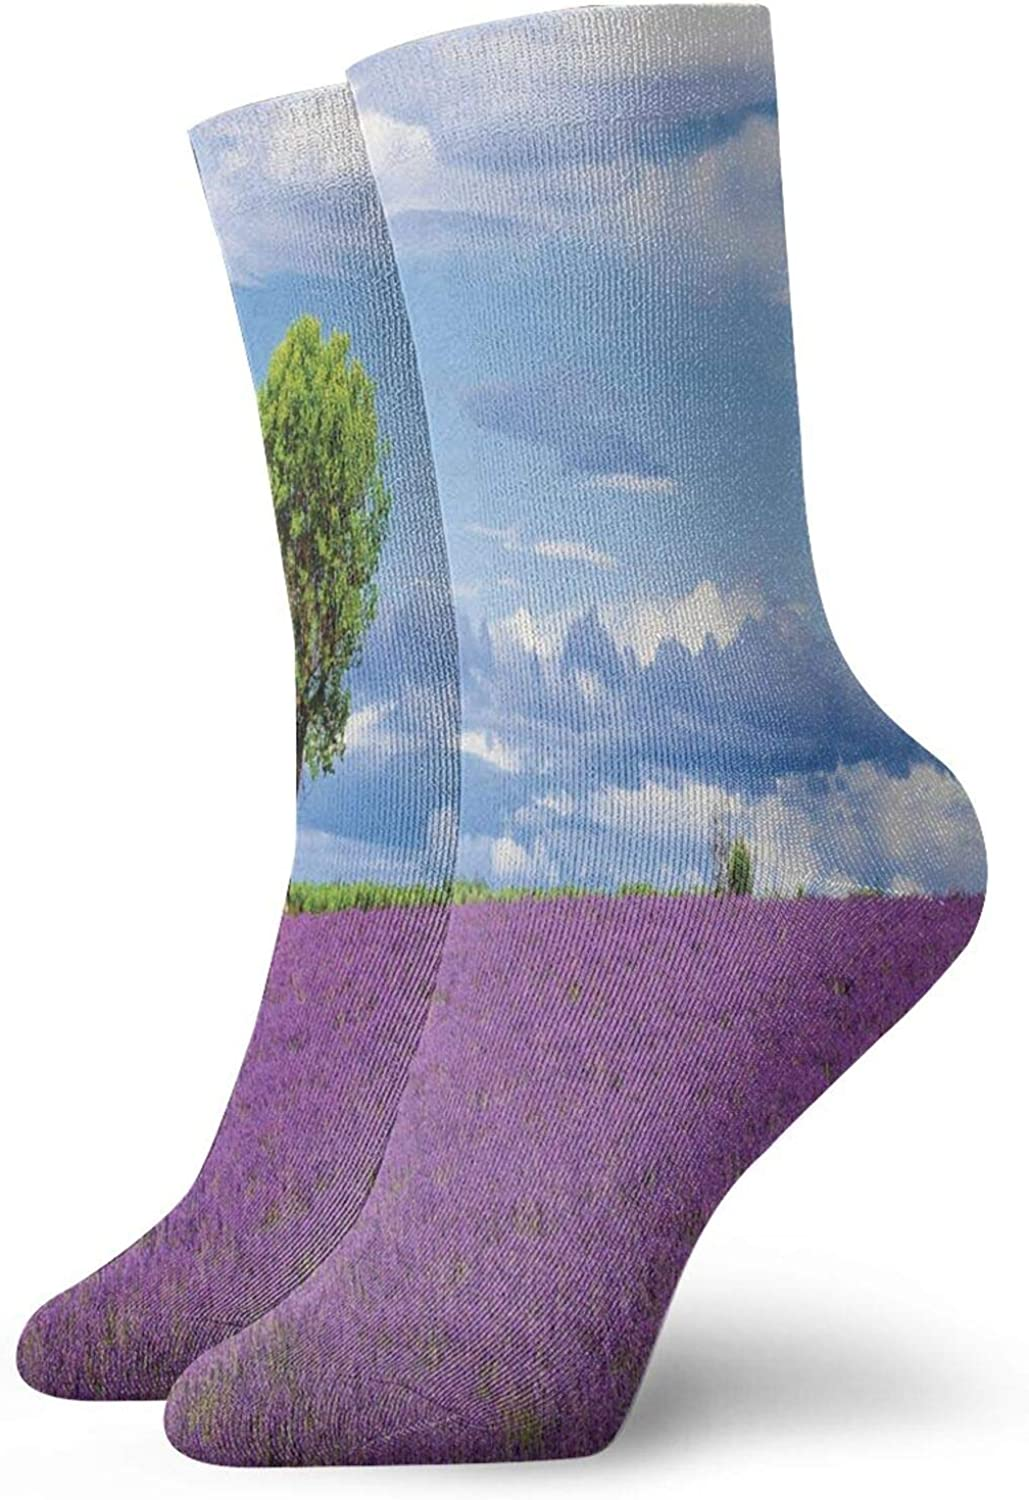 American Football Theme Grunge Looking Retro Composition With Balls Athletic Socks For Men / Women,30CM